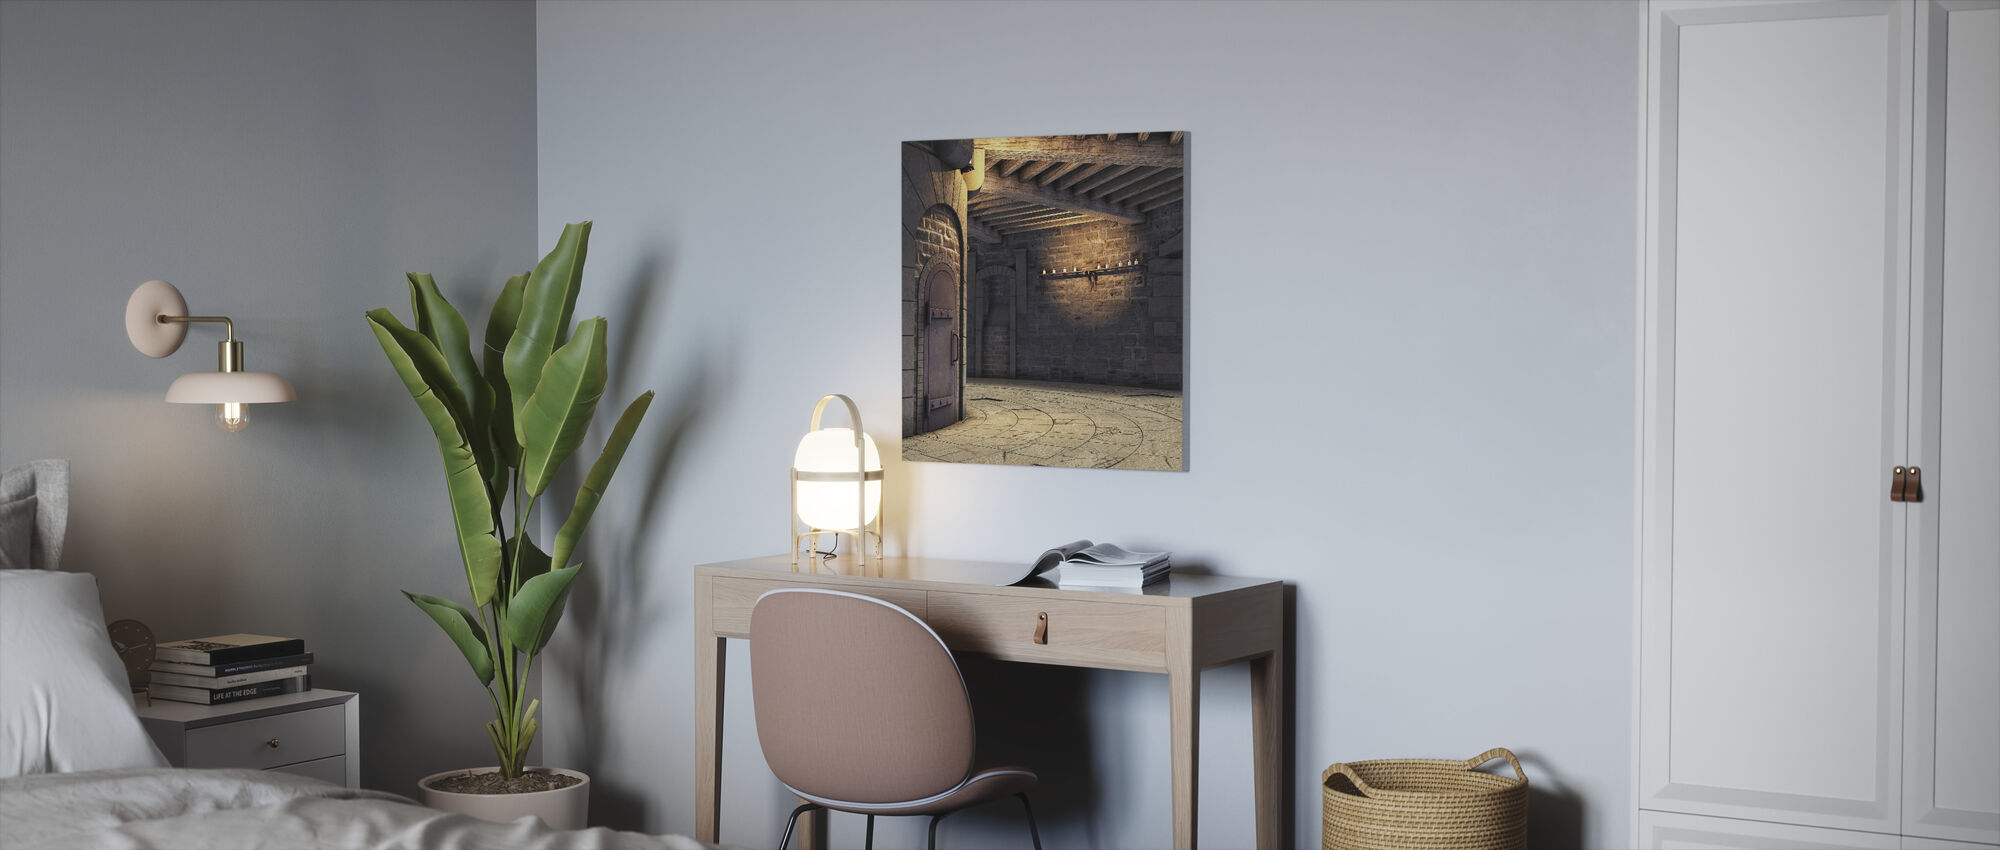 Tower Rotunda - Canvas print - Office